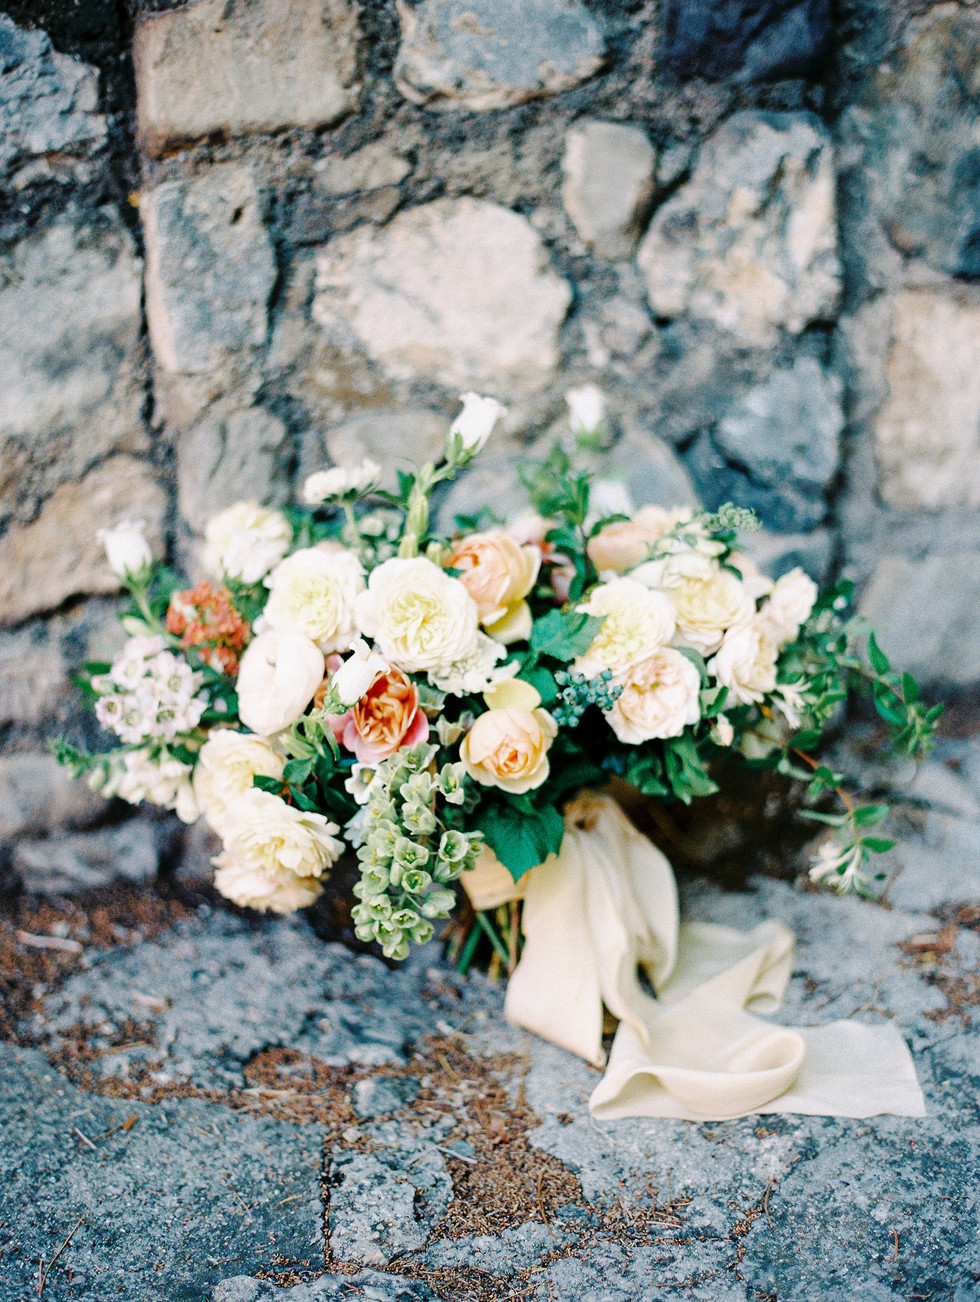 Lush, garden-inspired bridal bouquet with garden roses, fritillaria and honeysuckle. Photo: Shannon Elizabeth